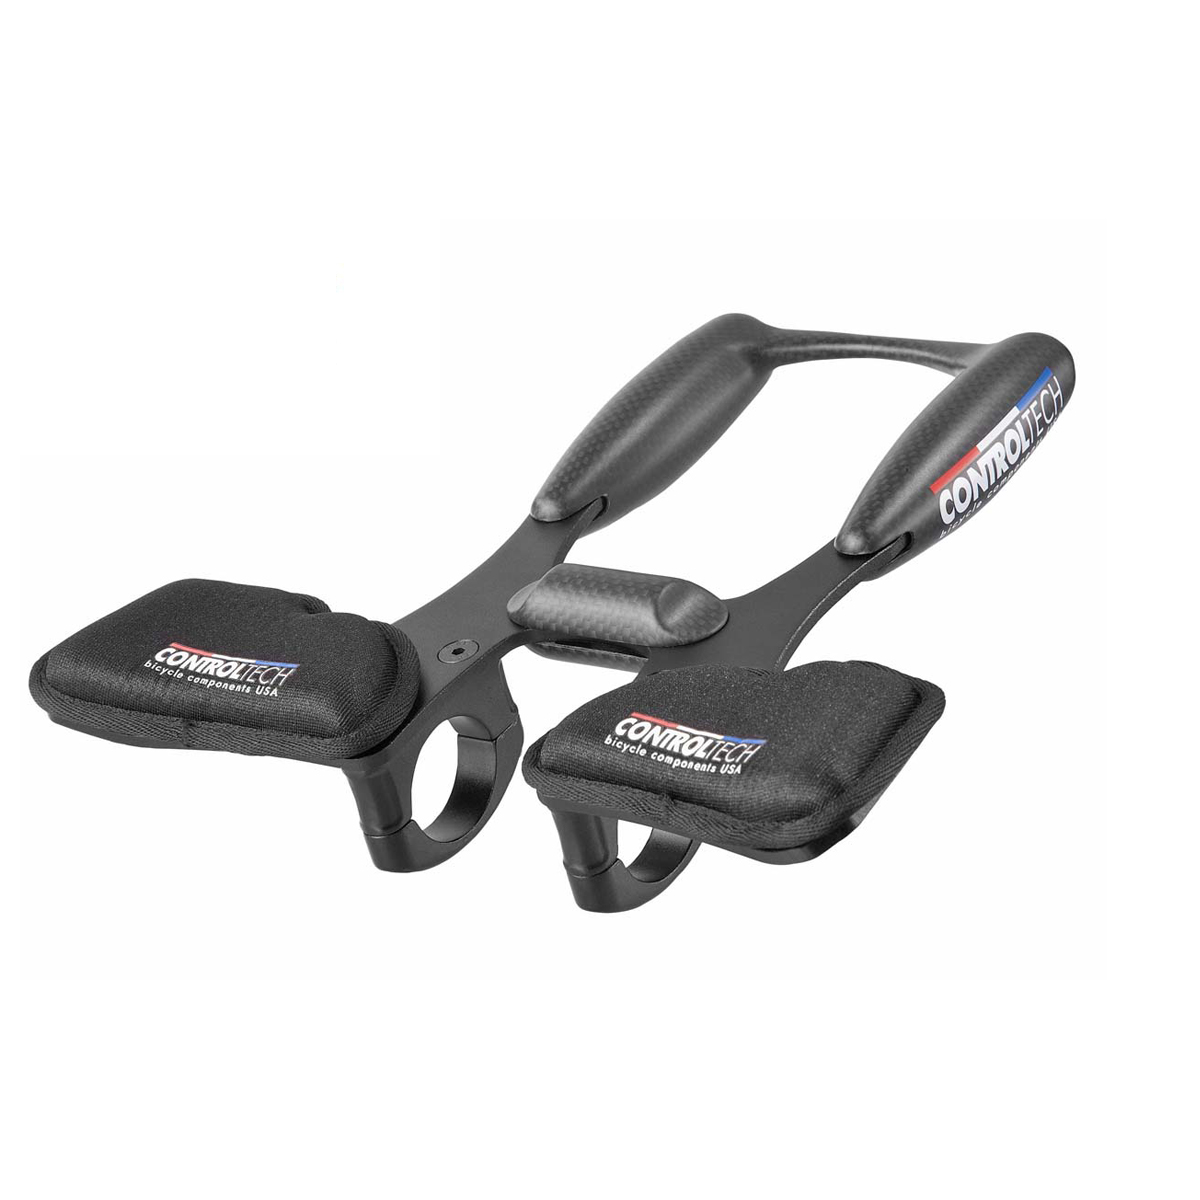 Prolongateur cintre Controltech Aero Cockpit AL 31.8 mm